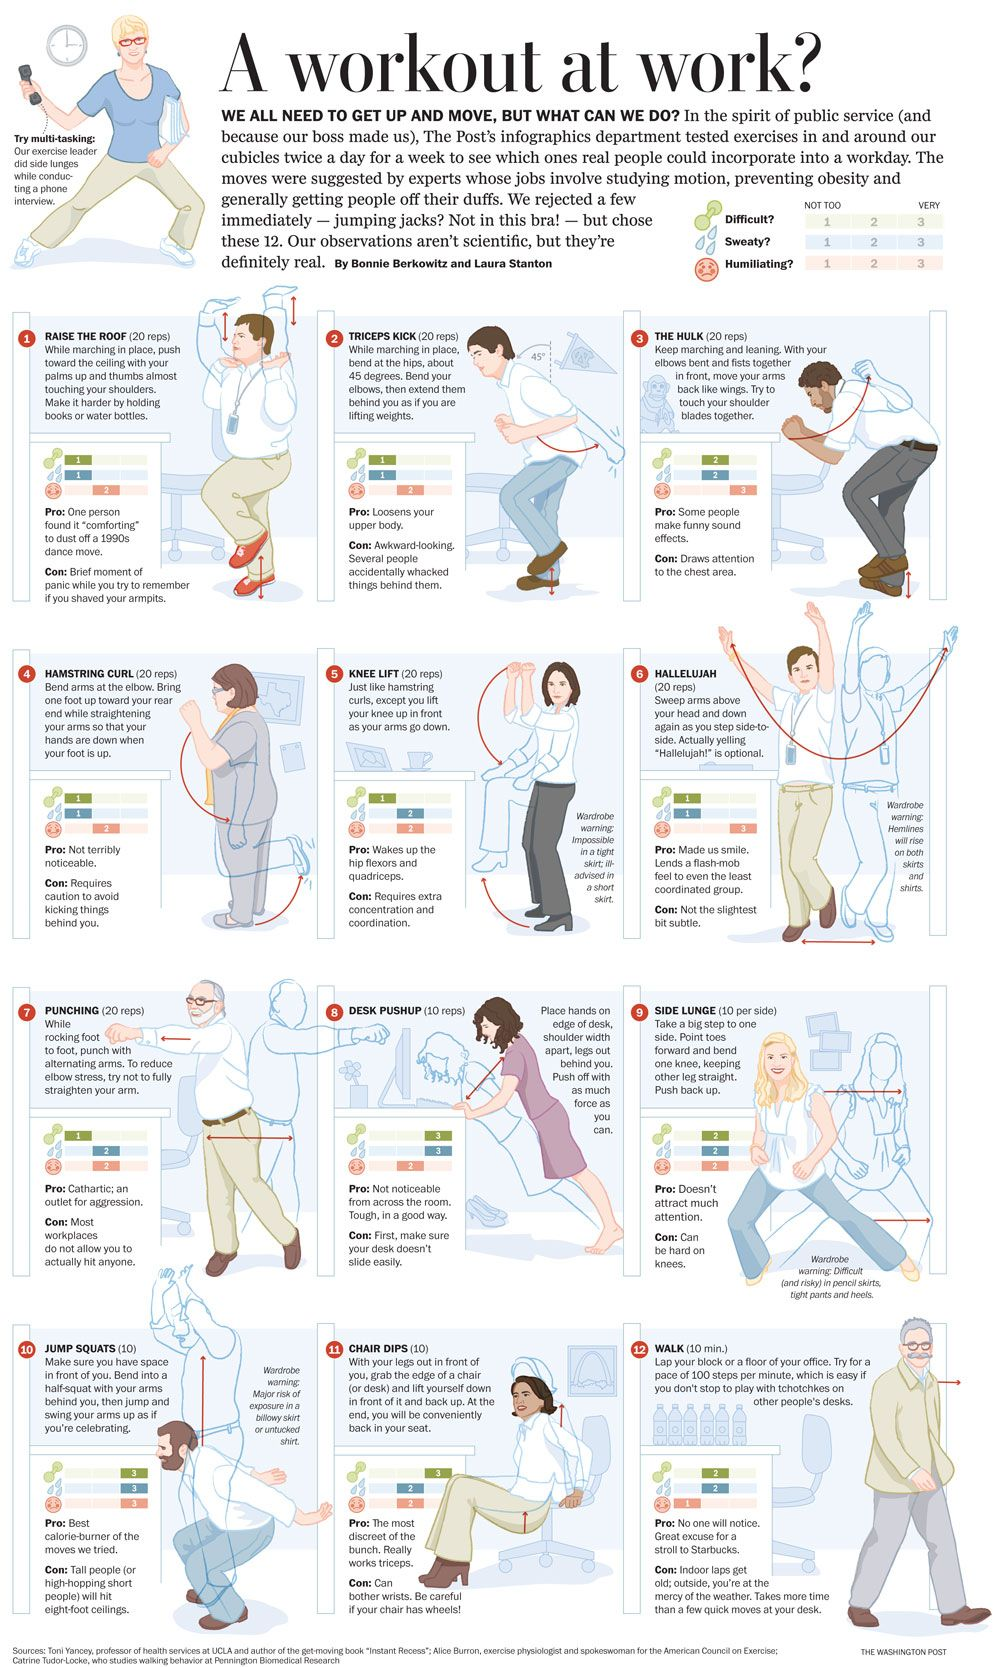 Some Real Exercises You Can Do At The Office I Saw This One When